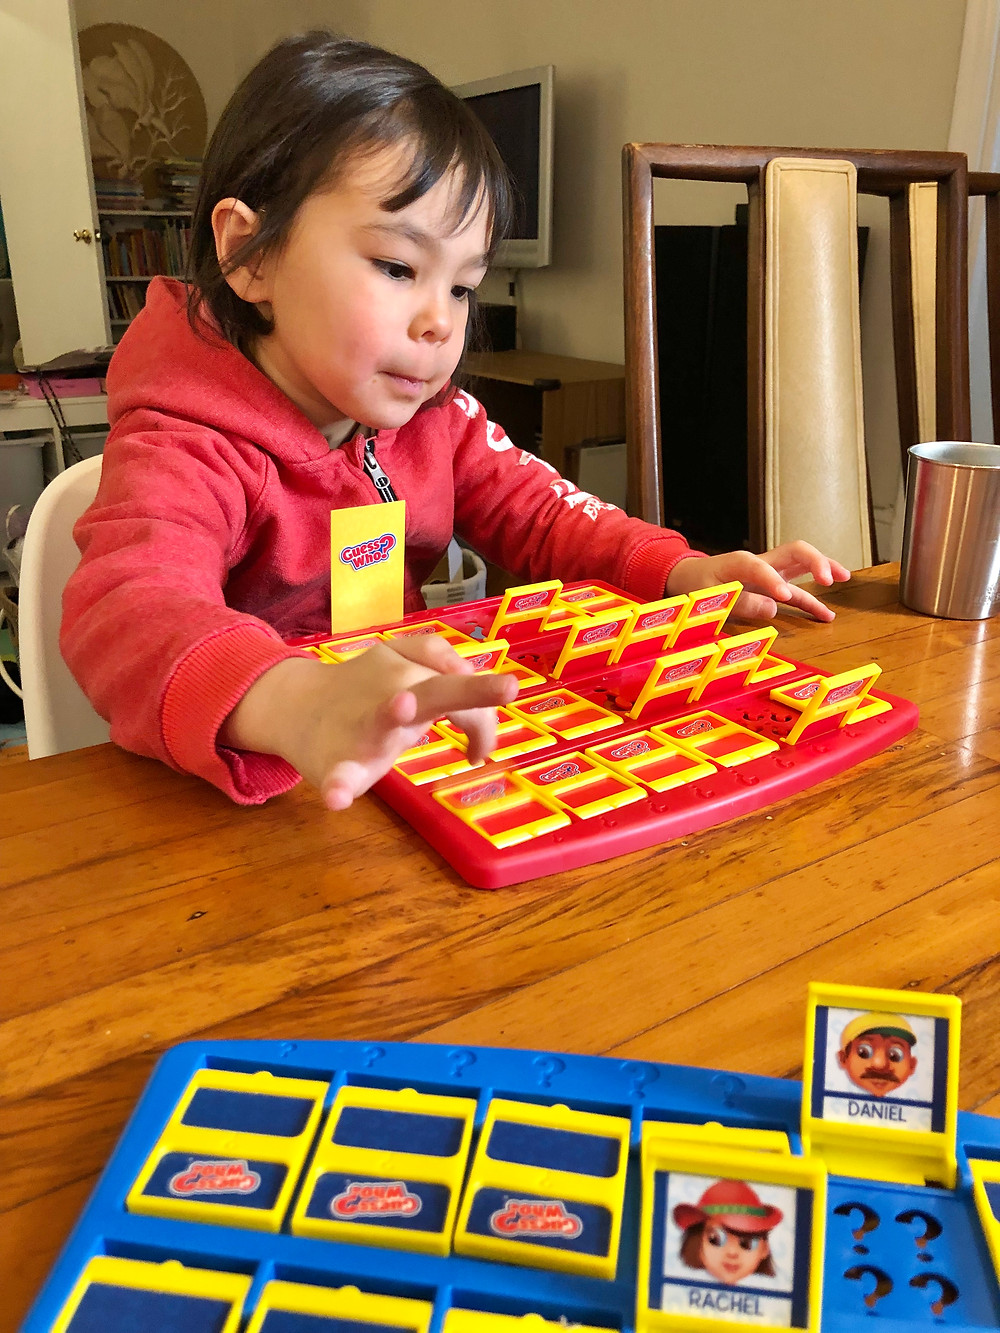 Guess Who Hasbro, best toddler board games, best toddler birthday gifts, best board games for kids